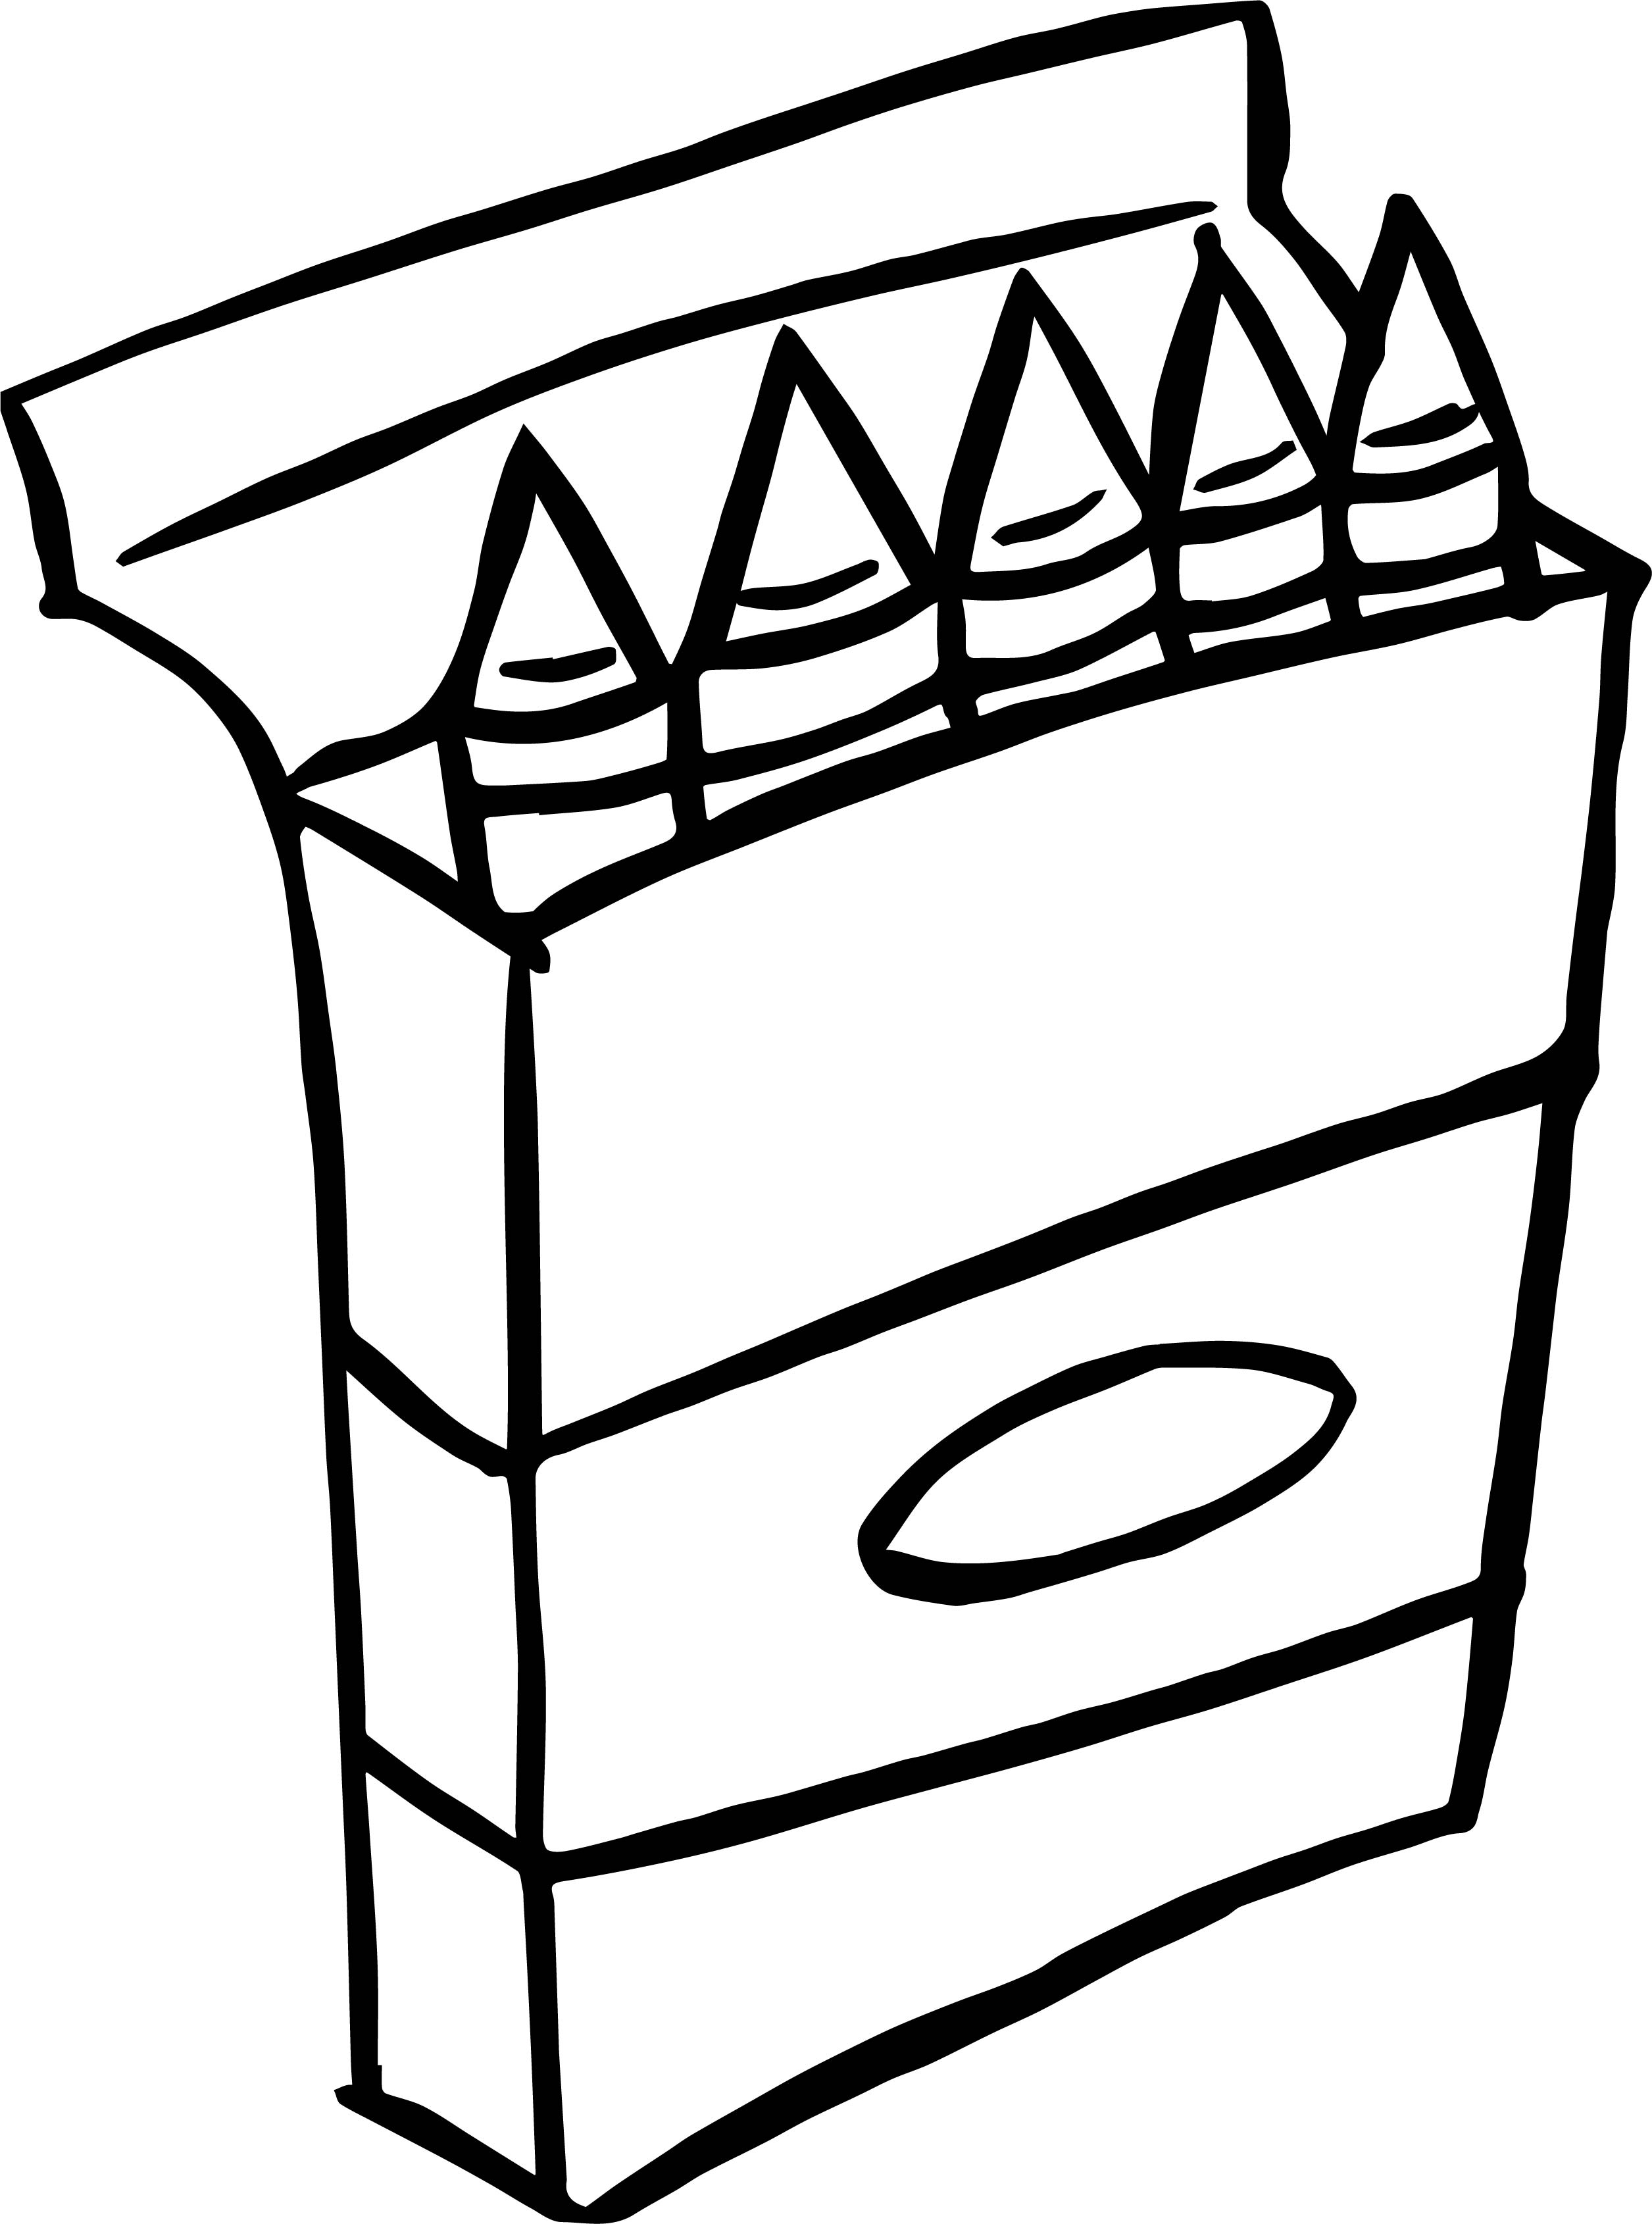 Crayons Clipart Black And White